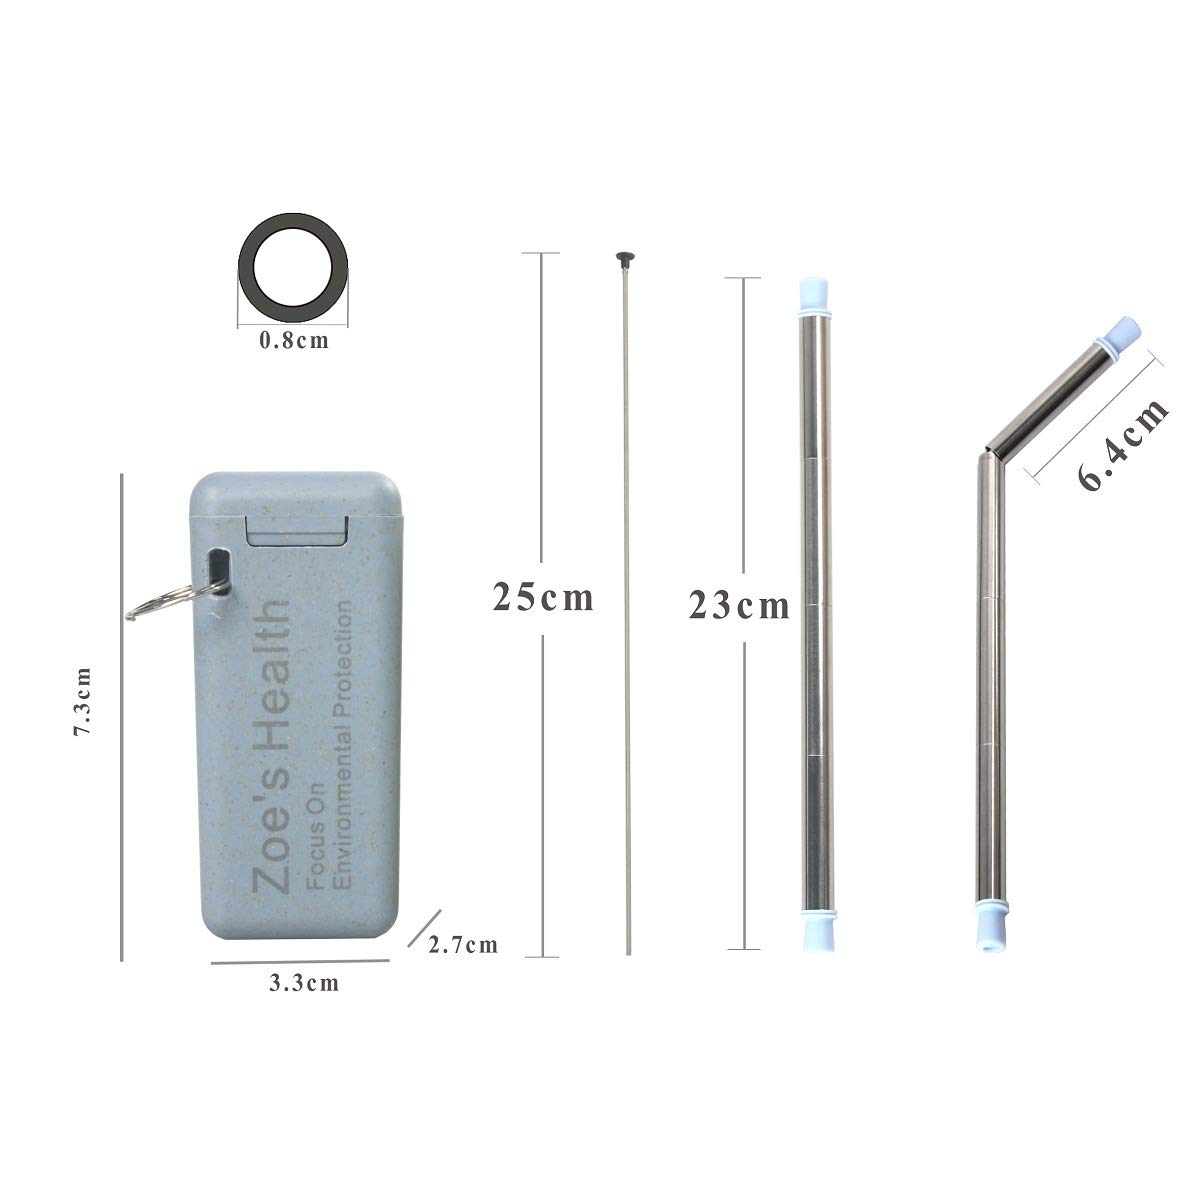 Portable Straws,Food-Grade,Wheat Case with Cleaning Brush Blue + Yellow Collapsible Straw,Reusable Stainless Steel Shenzhen BTSKChina Co LTD Fold Straws